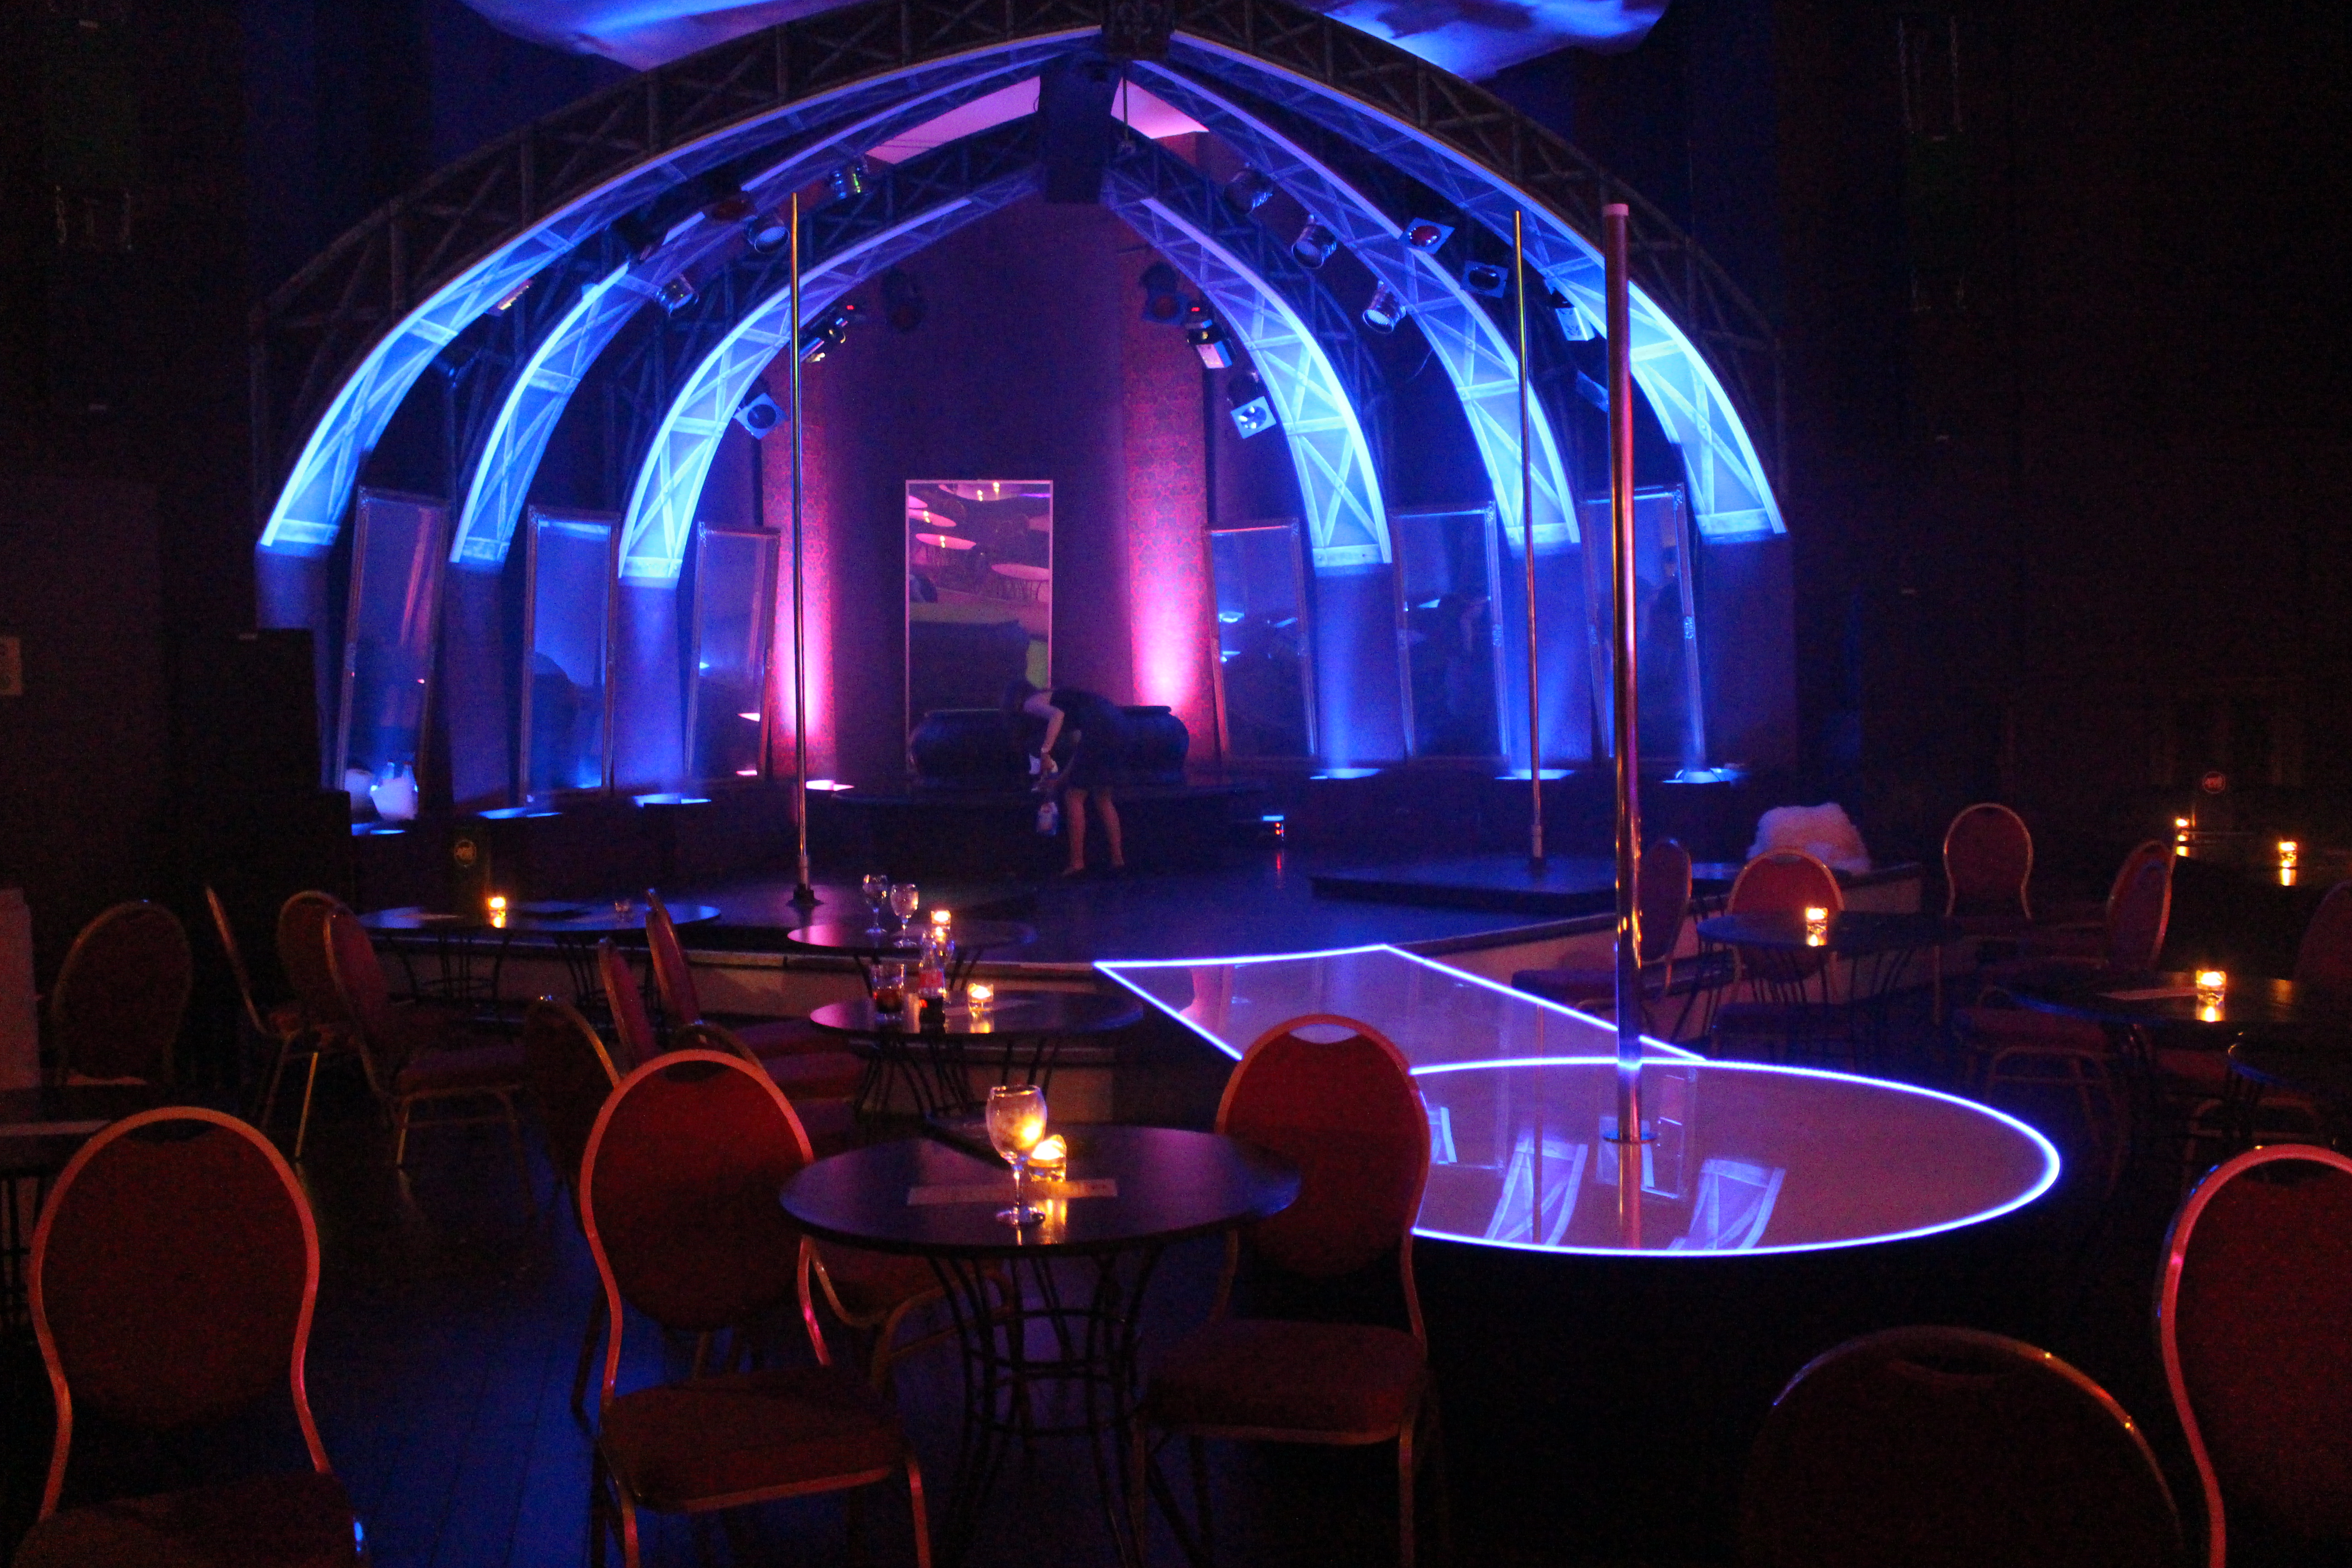 Florida church hopes to buy strip club to expand congregation